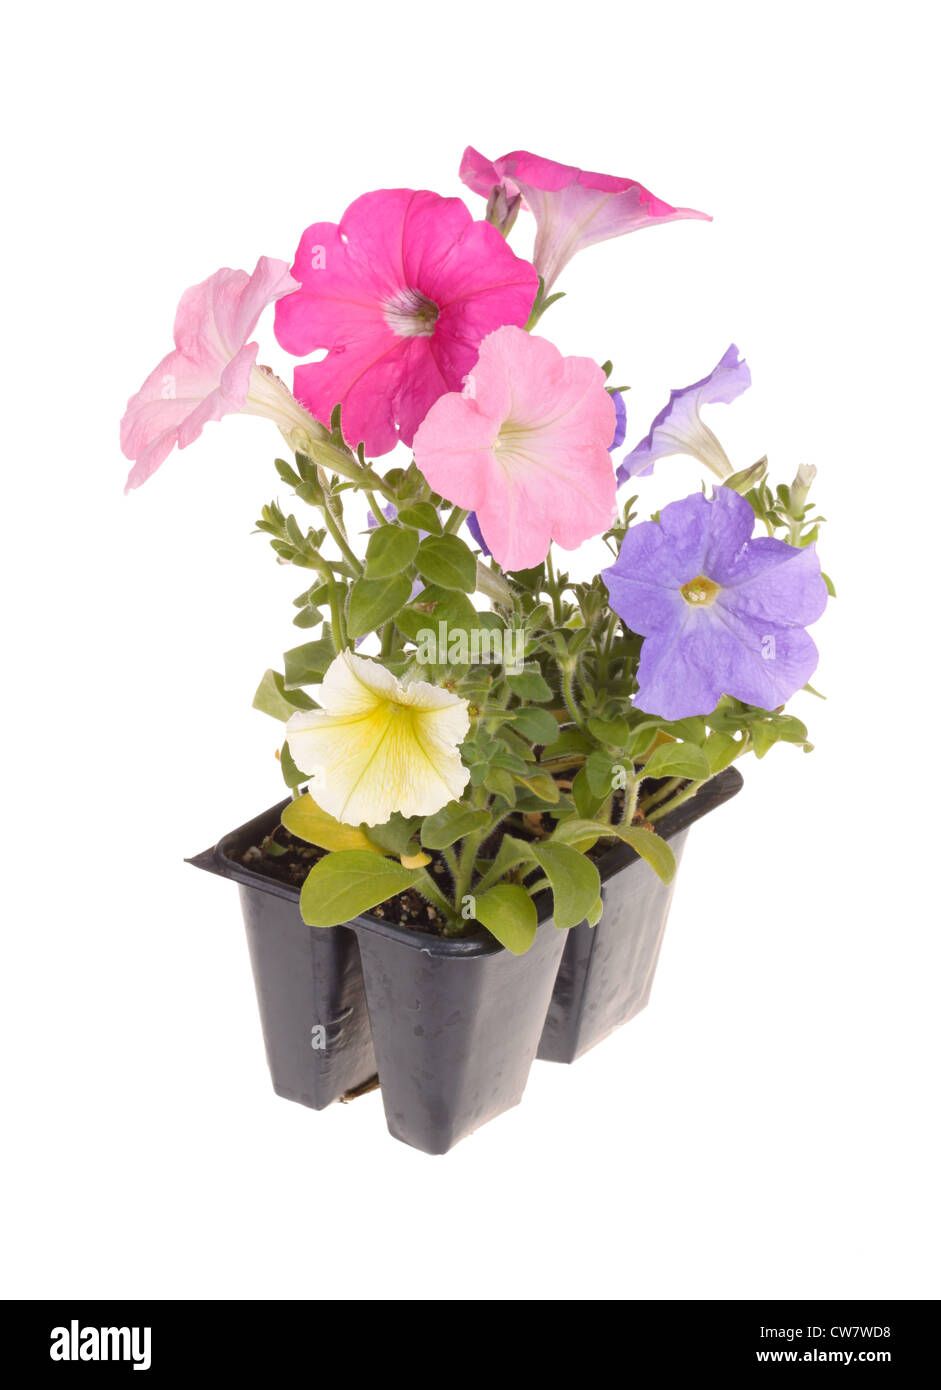 Pack of petunia seedlings ready for transplanting - Stock Image